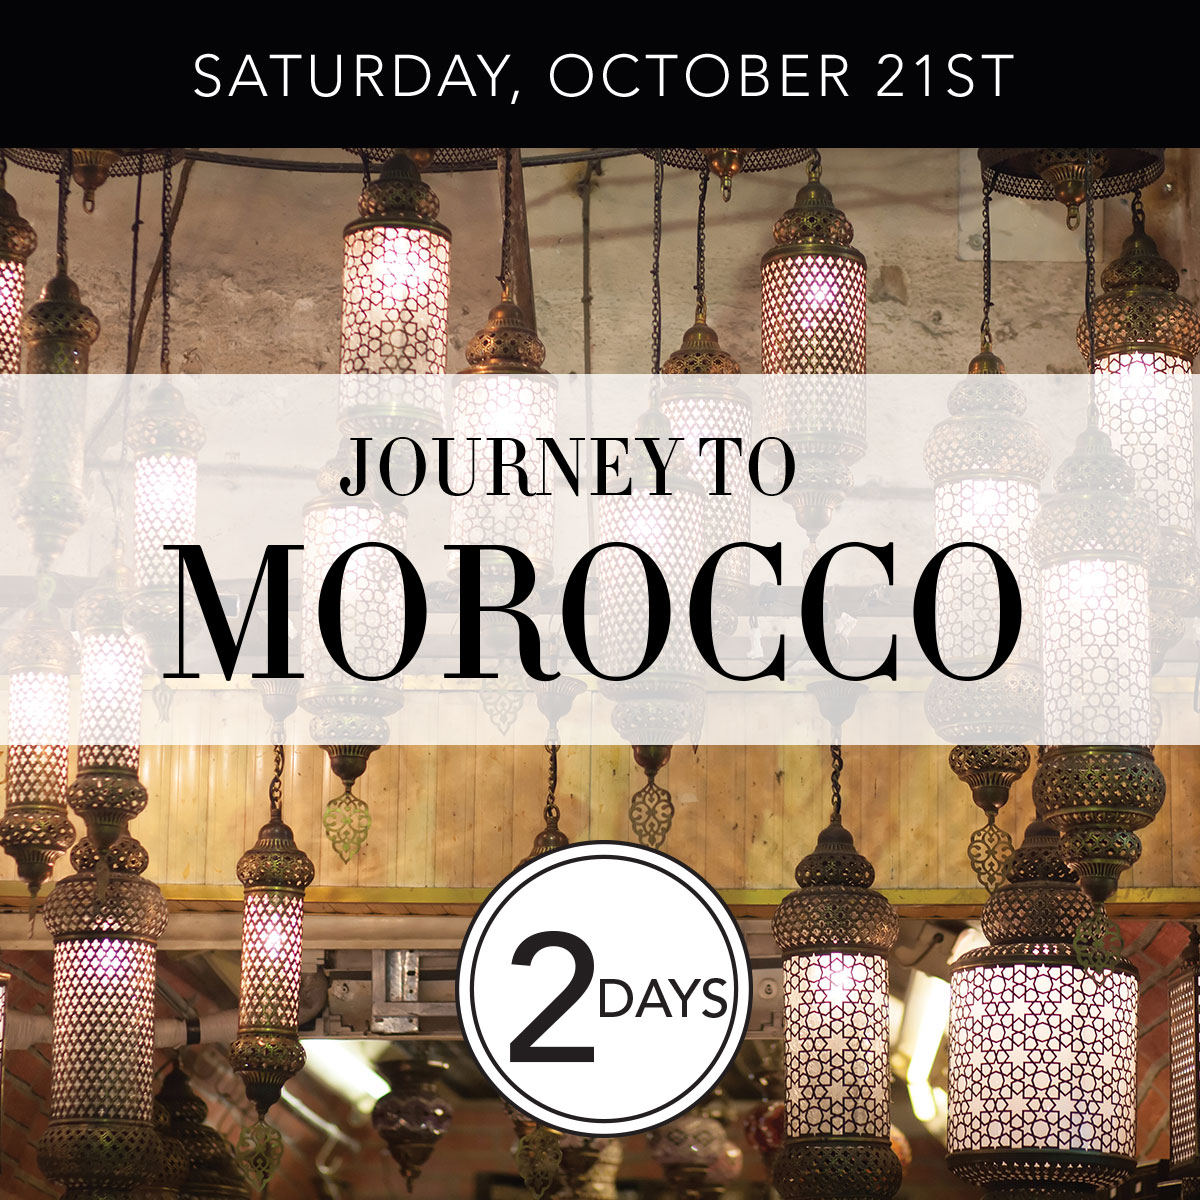 Saturday, October Twenty First - Journey to Morocco - Two Days